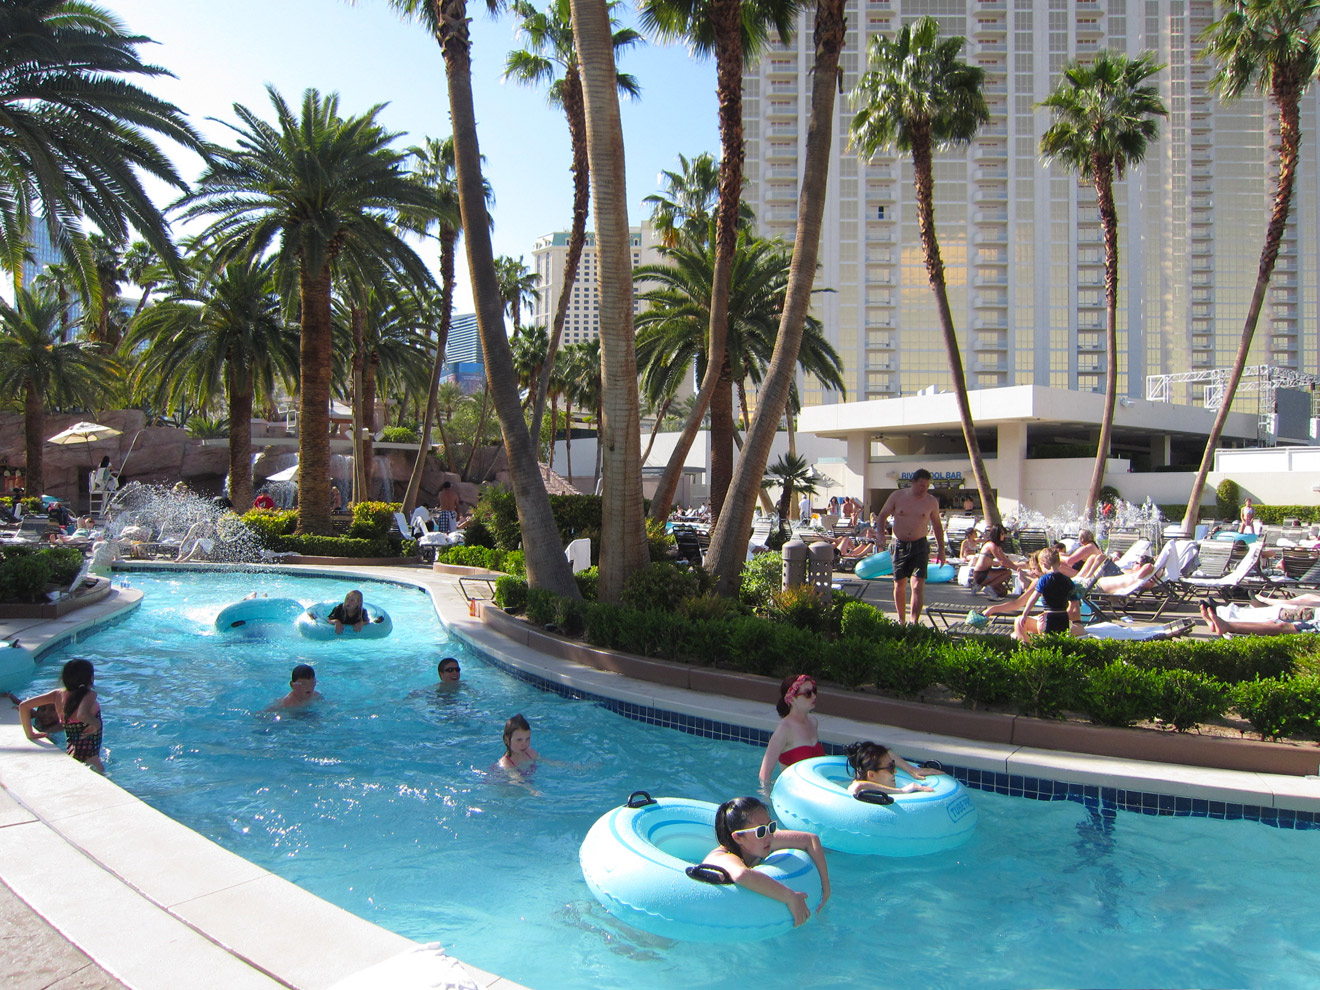 Flamingo Pool Dates Best Family Pools In Las Vegas For Kids Family Vacation Hub